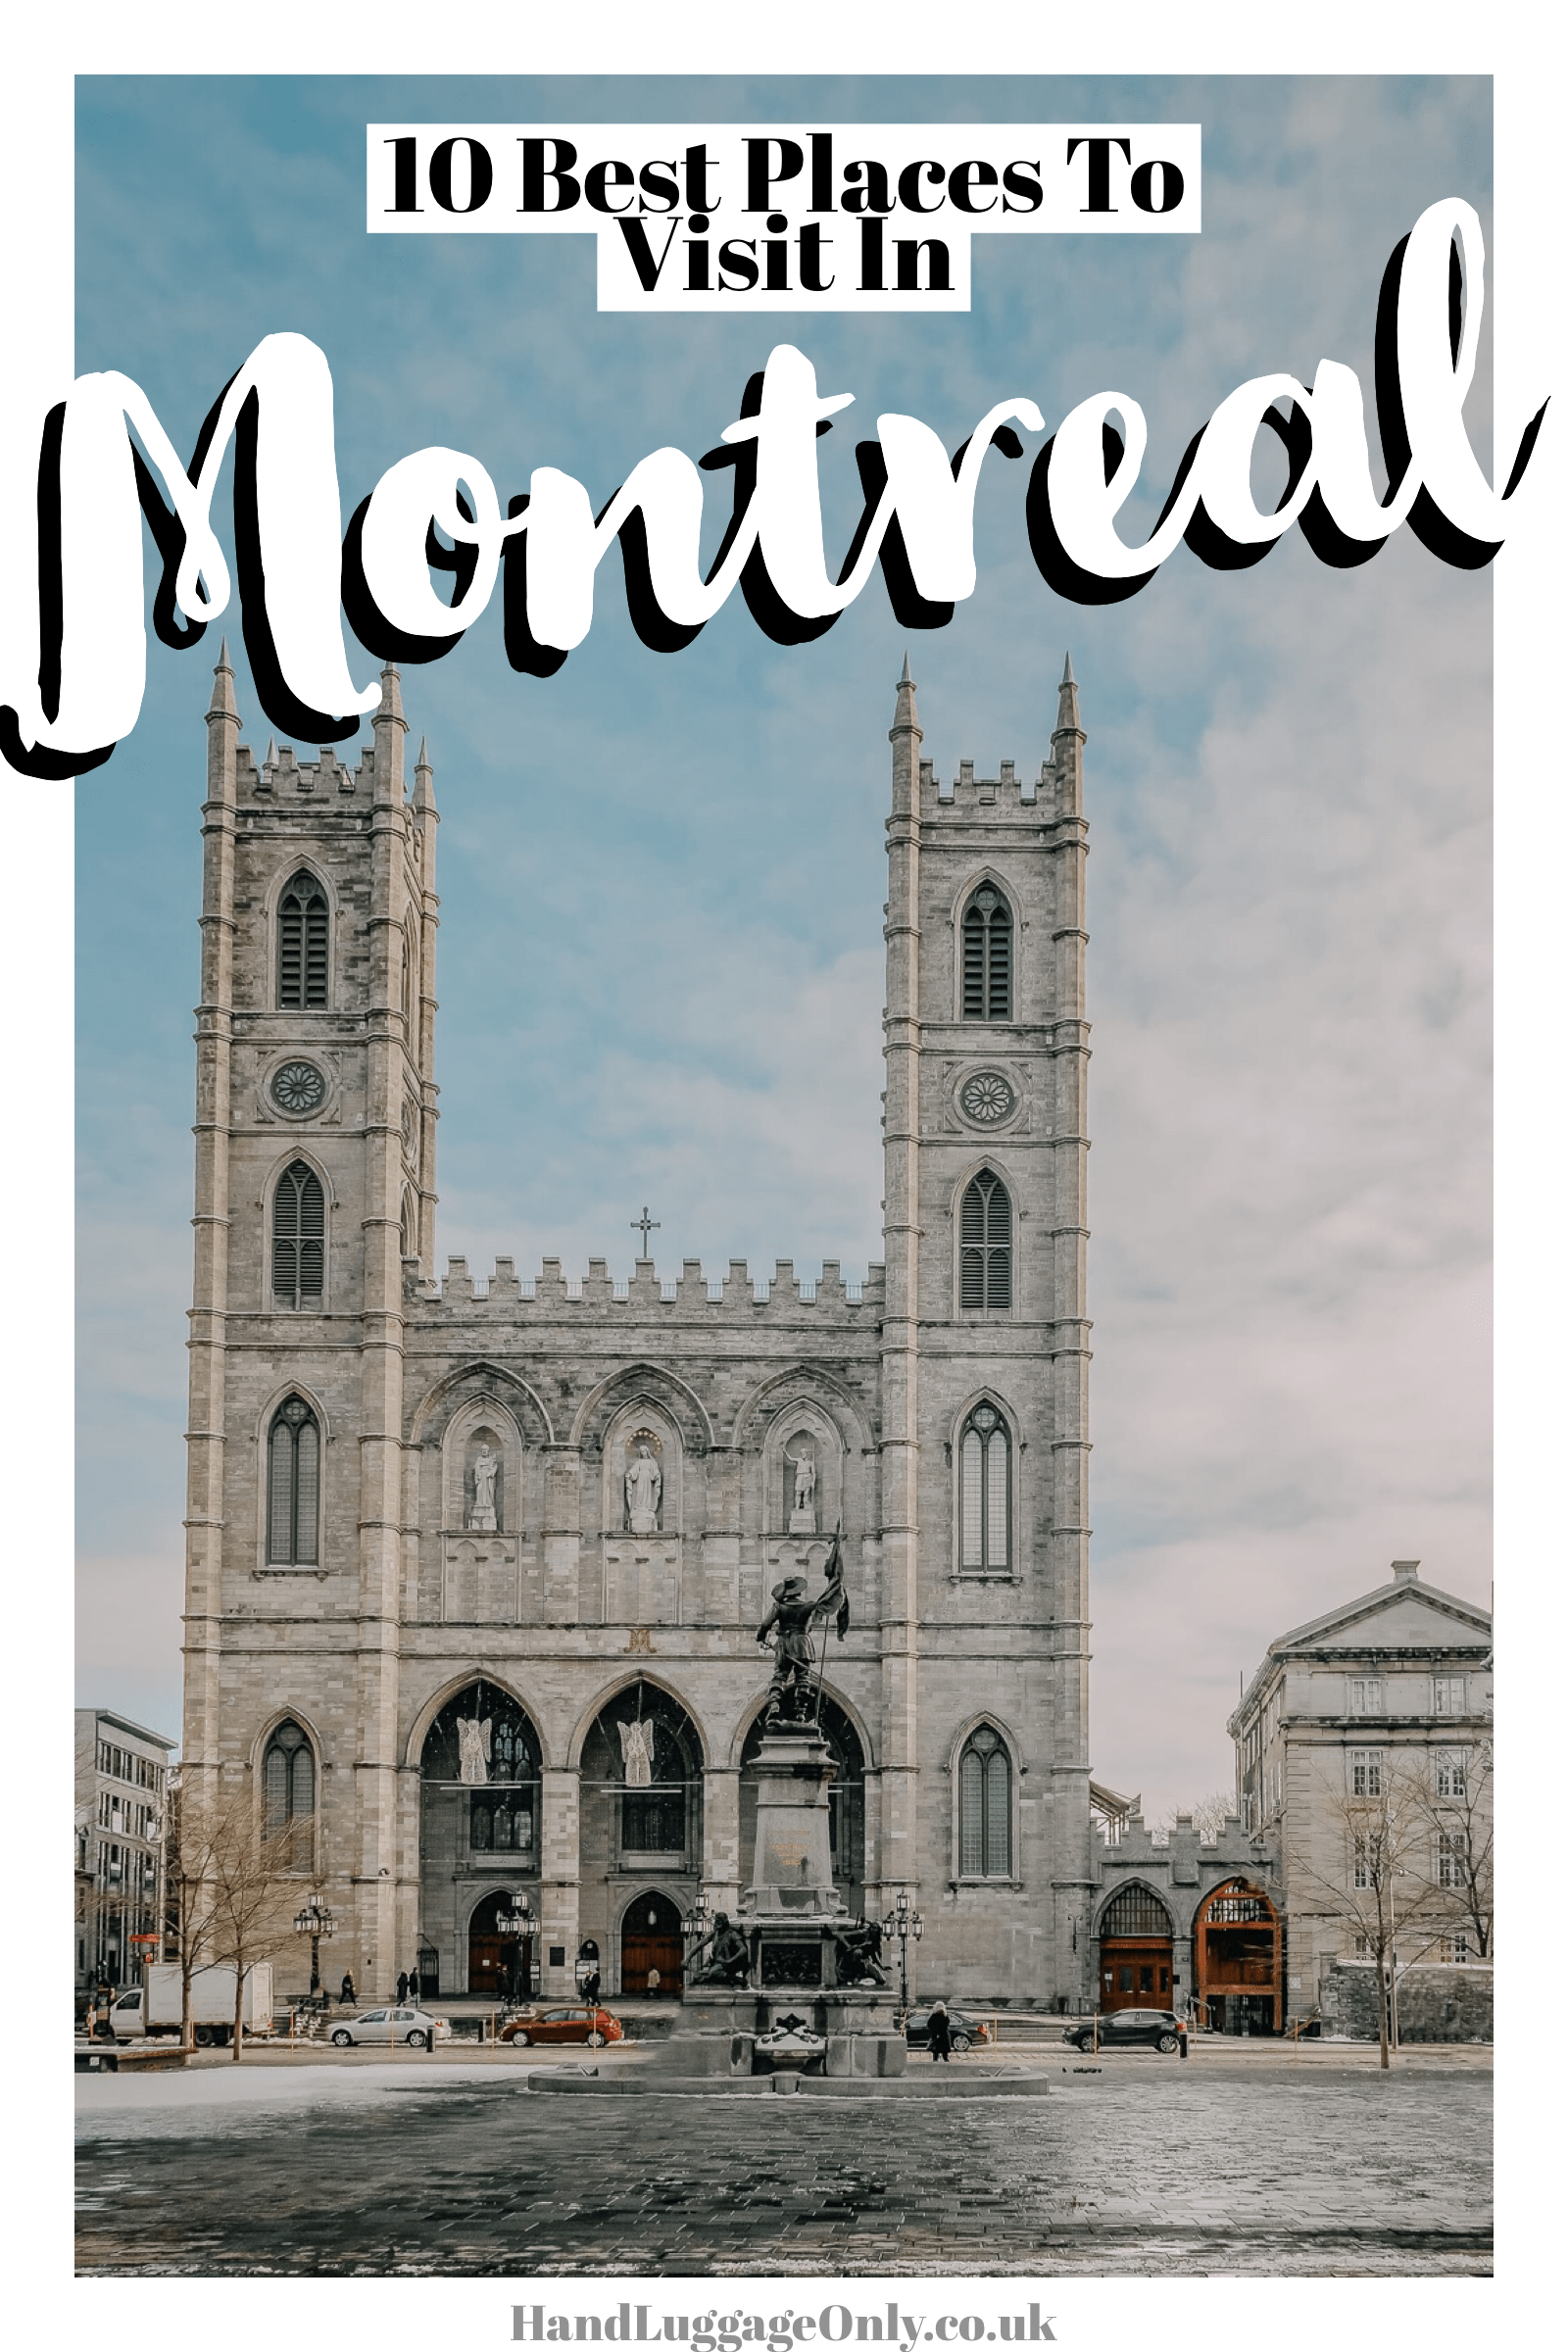 10 Best Things To Do In Montreal - Canada (1)